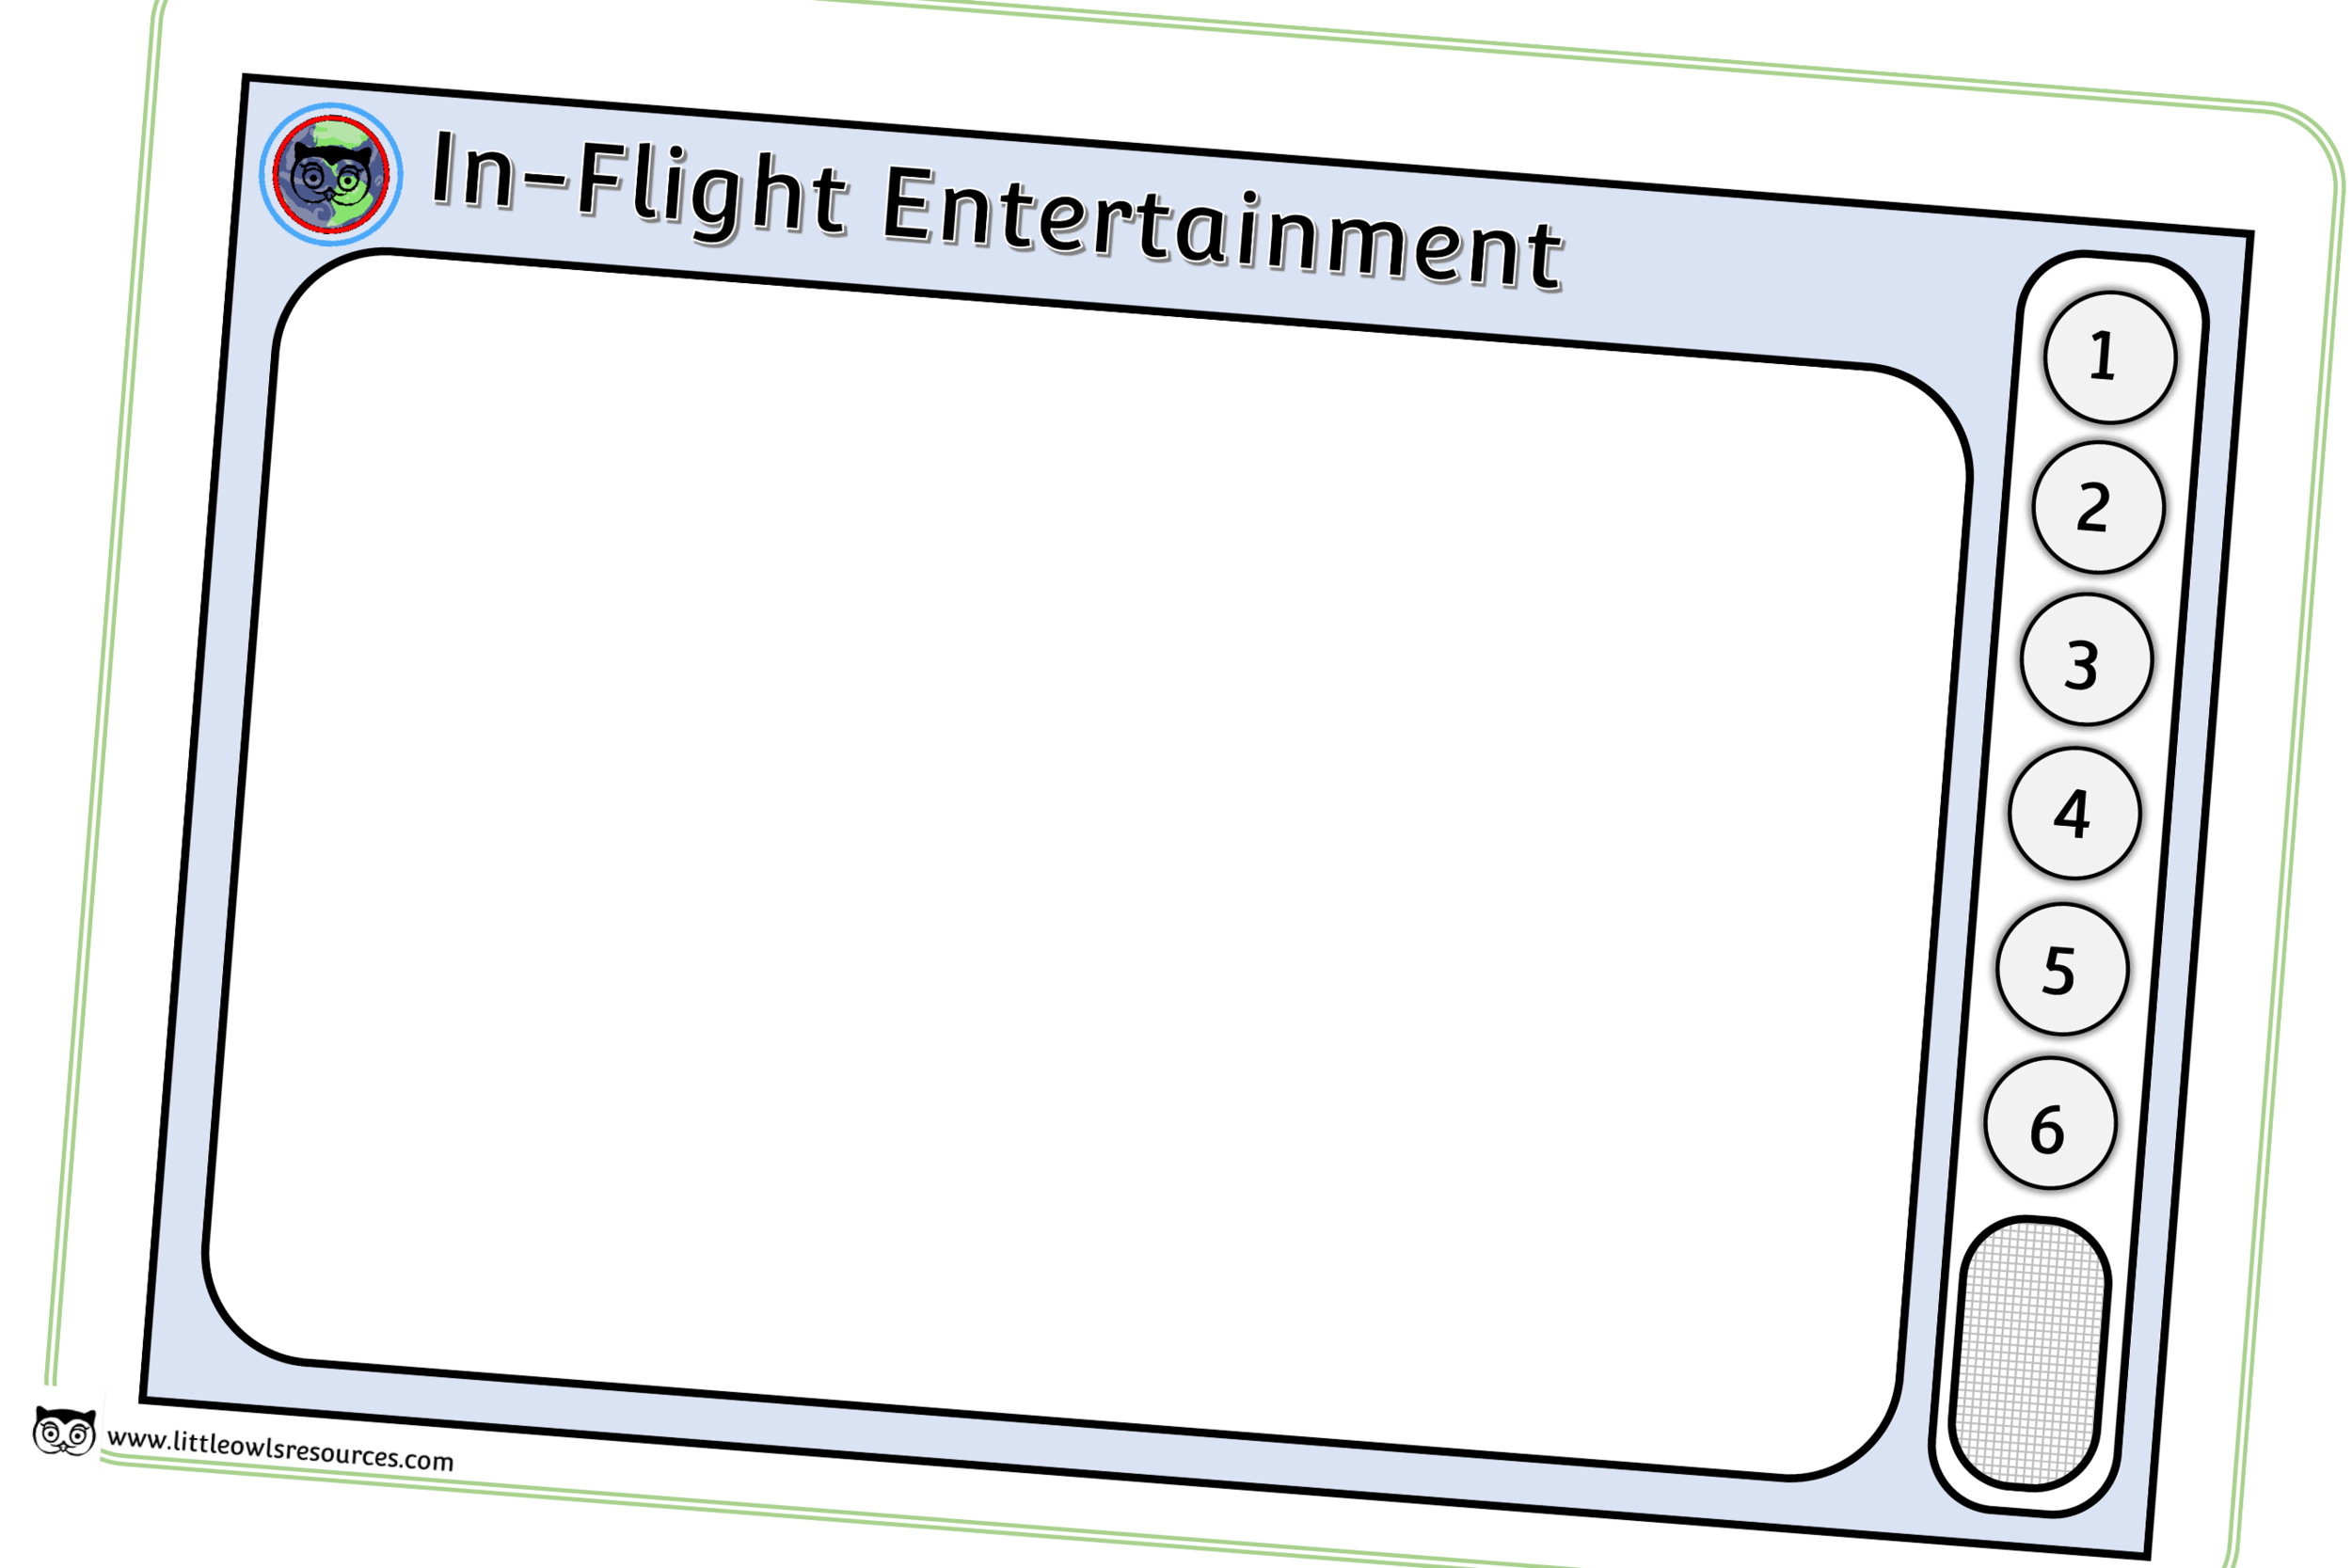 Aeroplane In-Flight TV/Entertainment Screen Role-Play/Mark Making Prompt/Activity